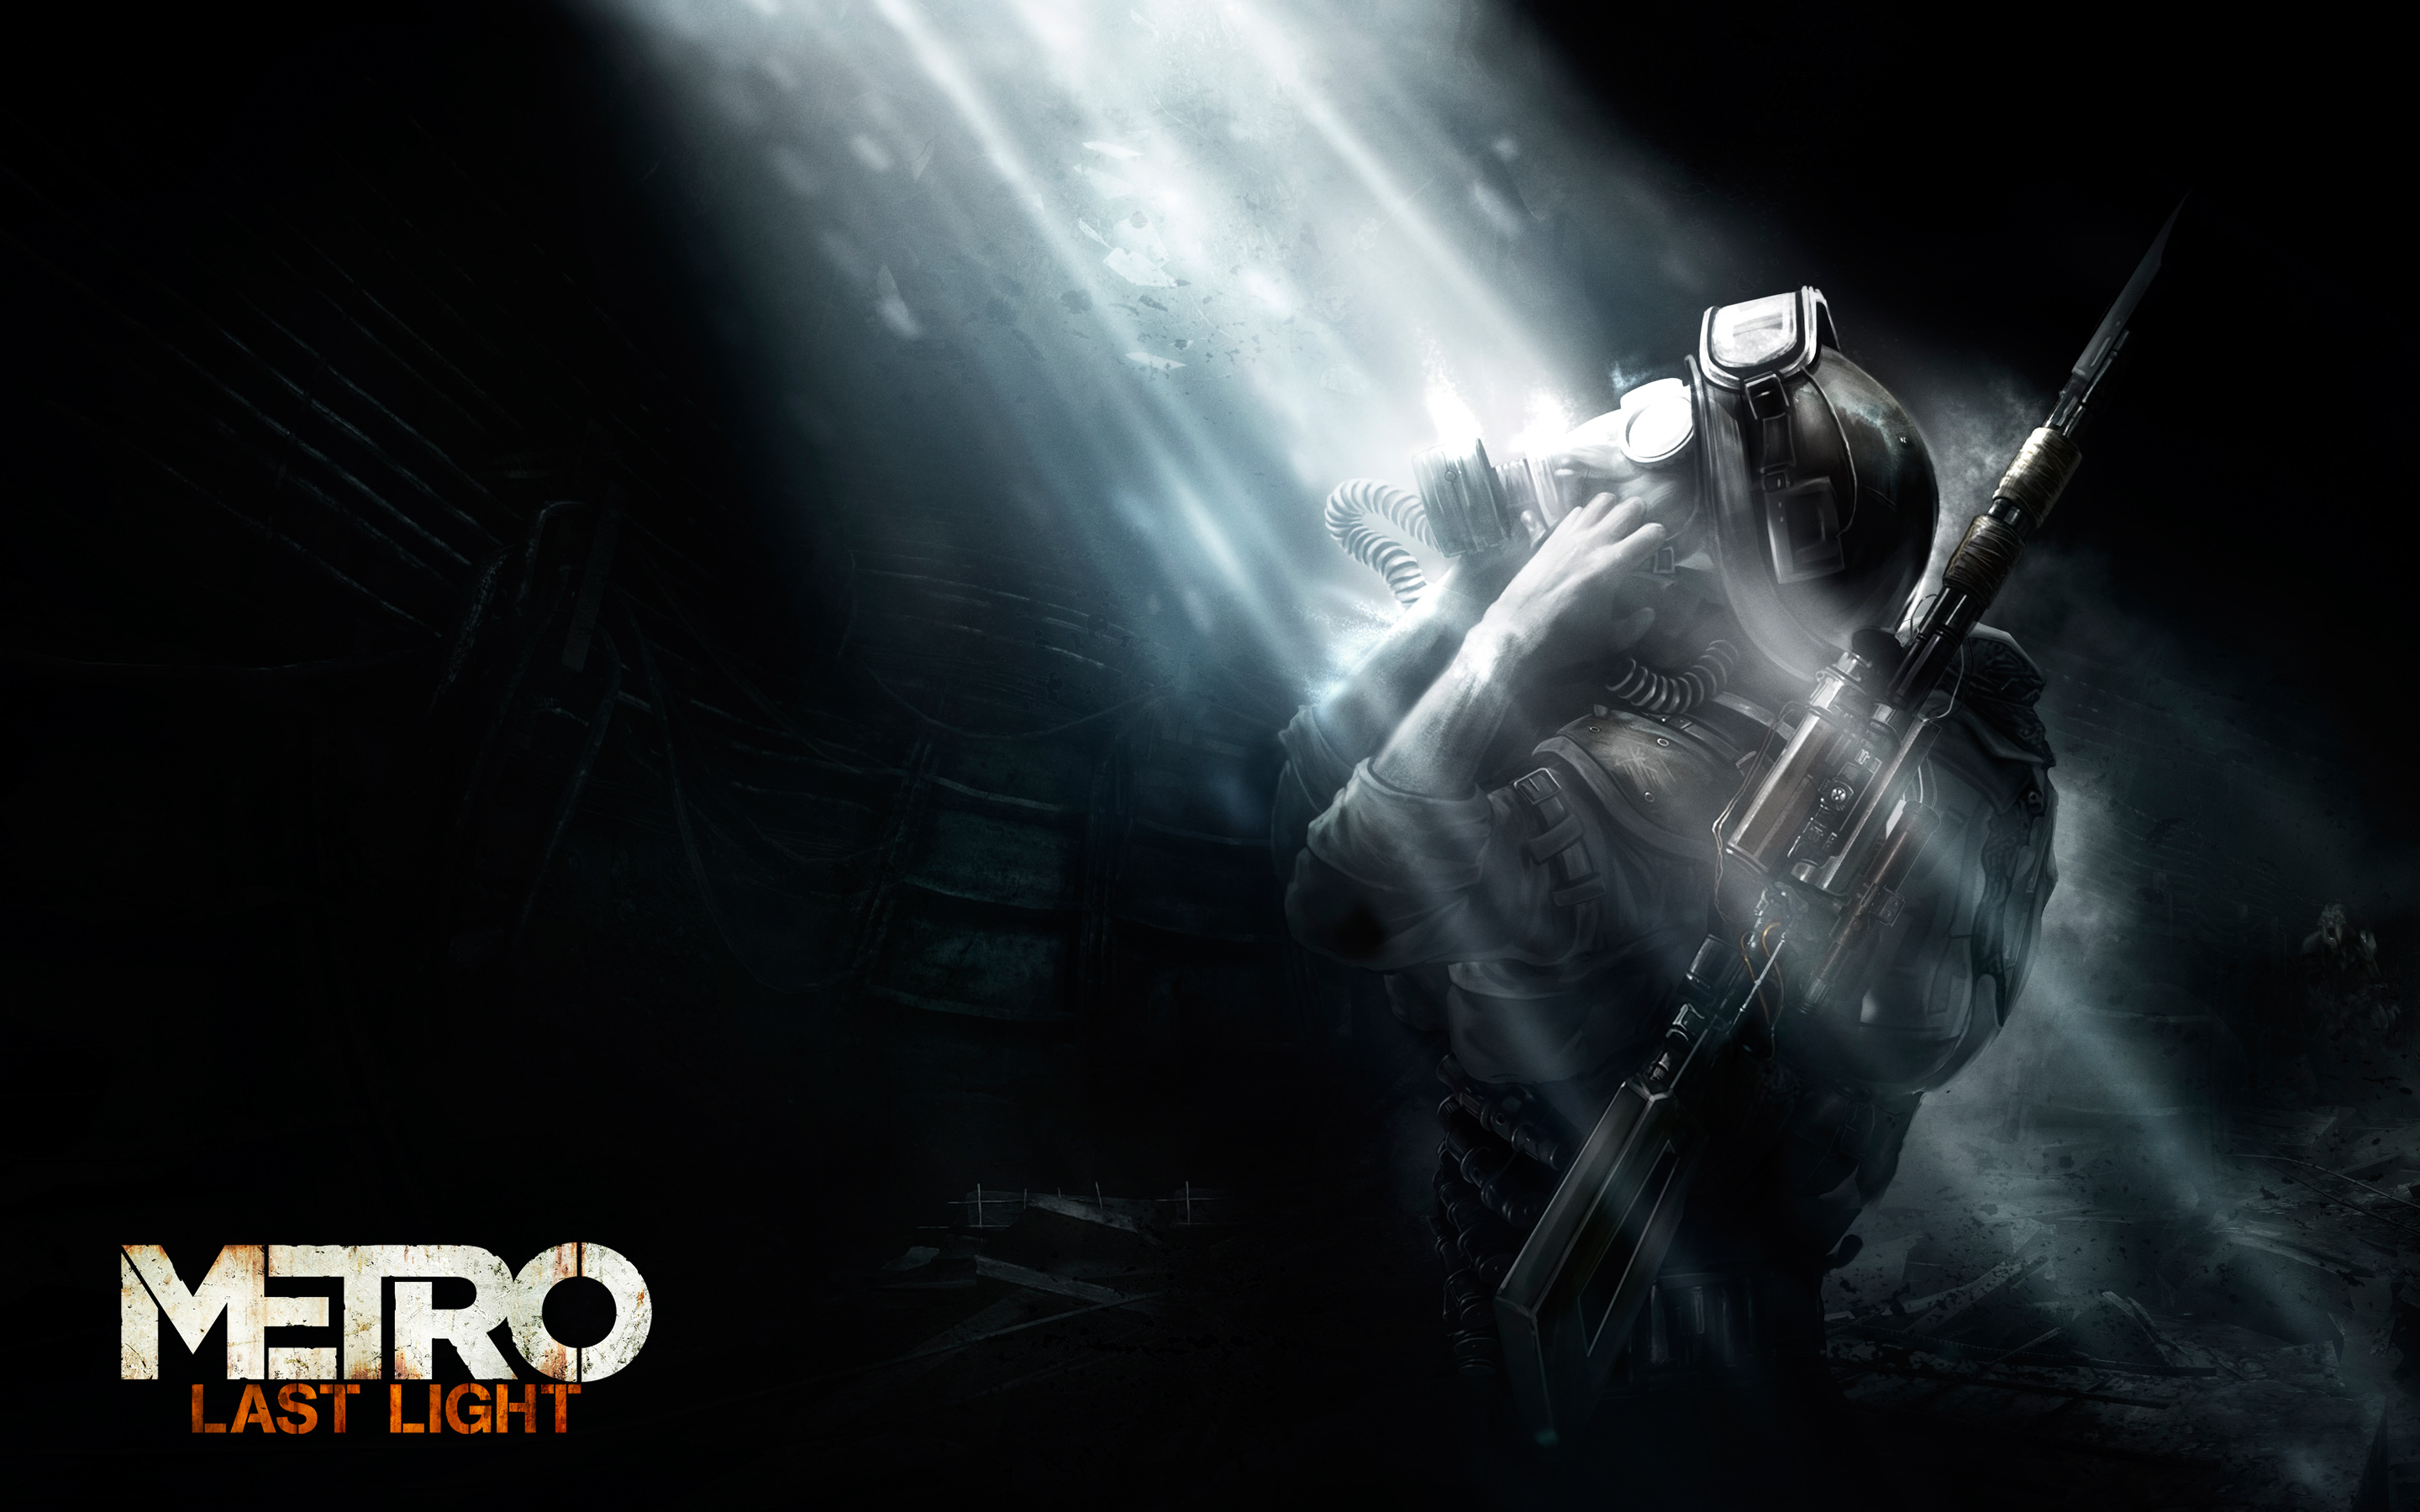 Metro Last Light 2013 Game Wallpapers HD Wallpapers 2880x1800